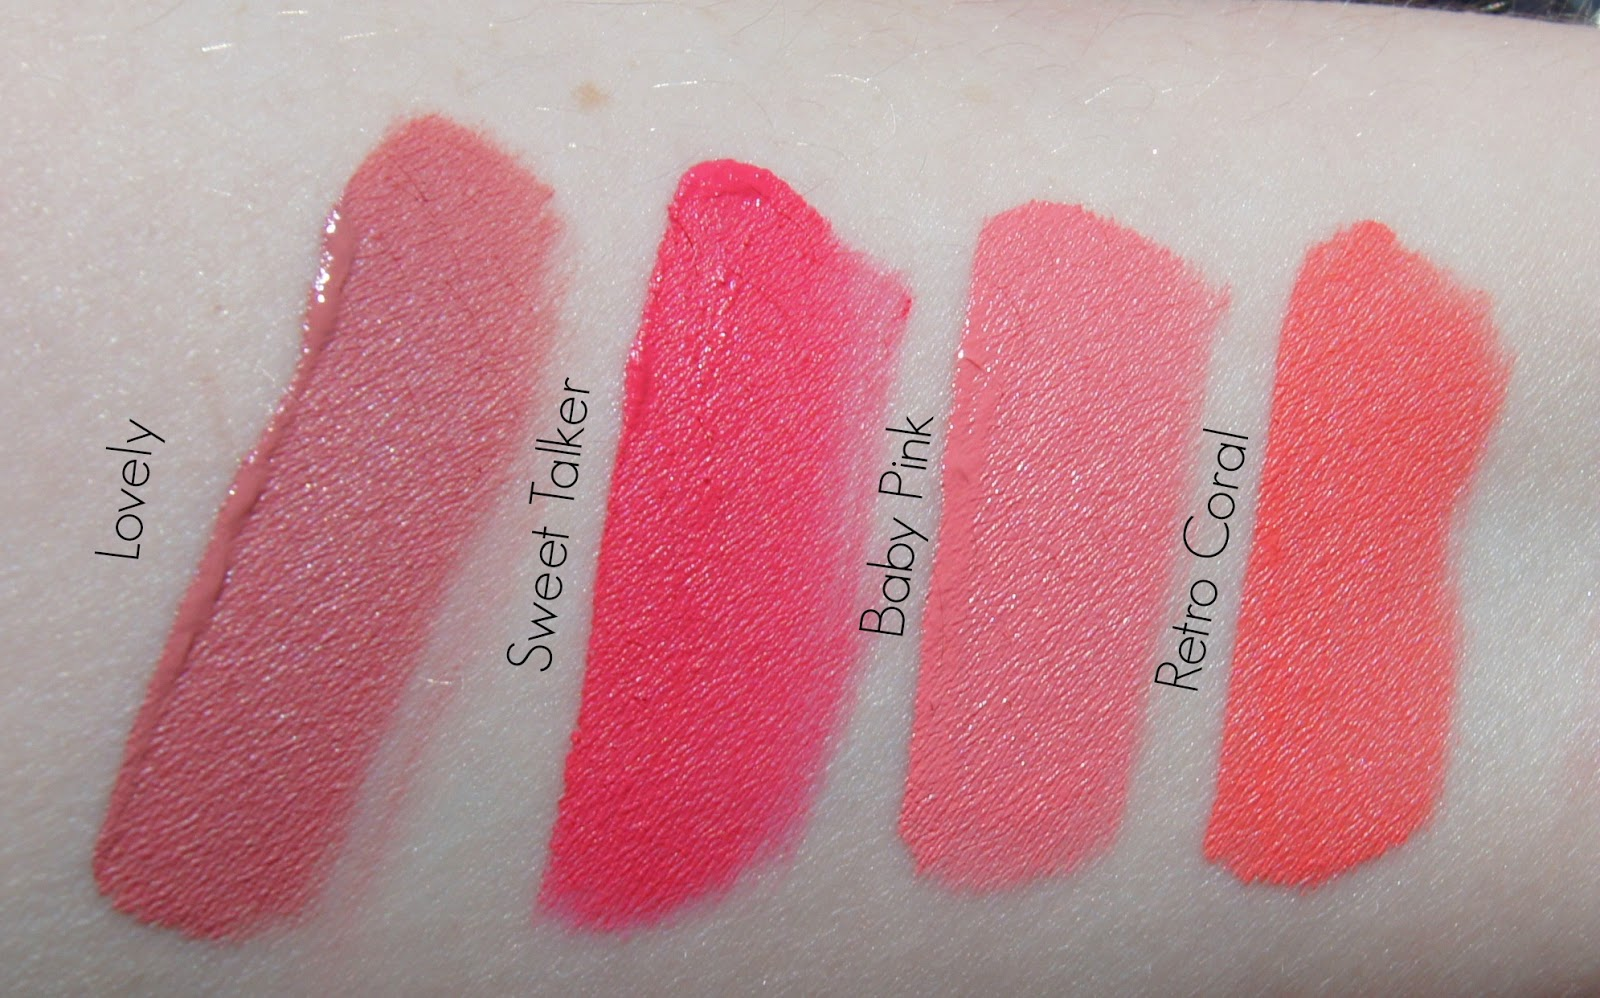 Anastasia Liquid Lipsticks-Lovely, Sweet Talk, Baby Pink and Retro Coral